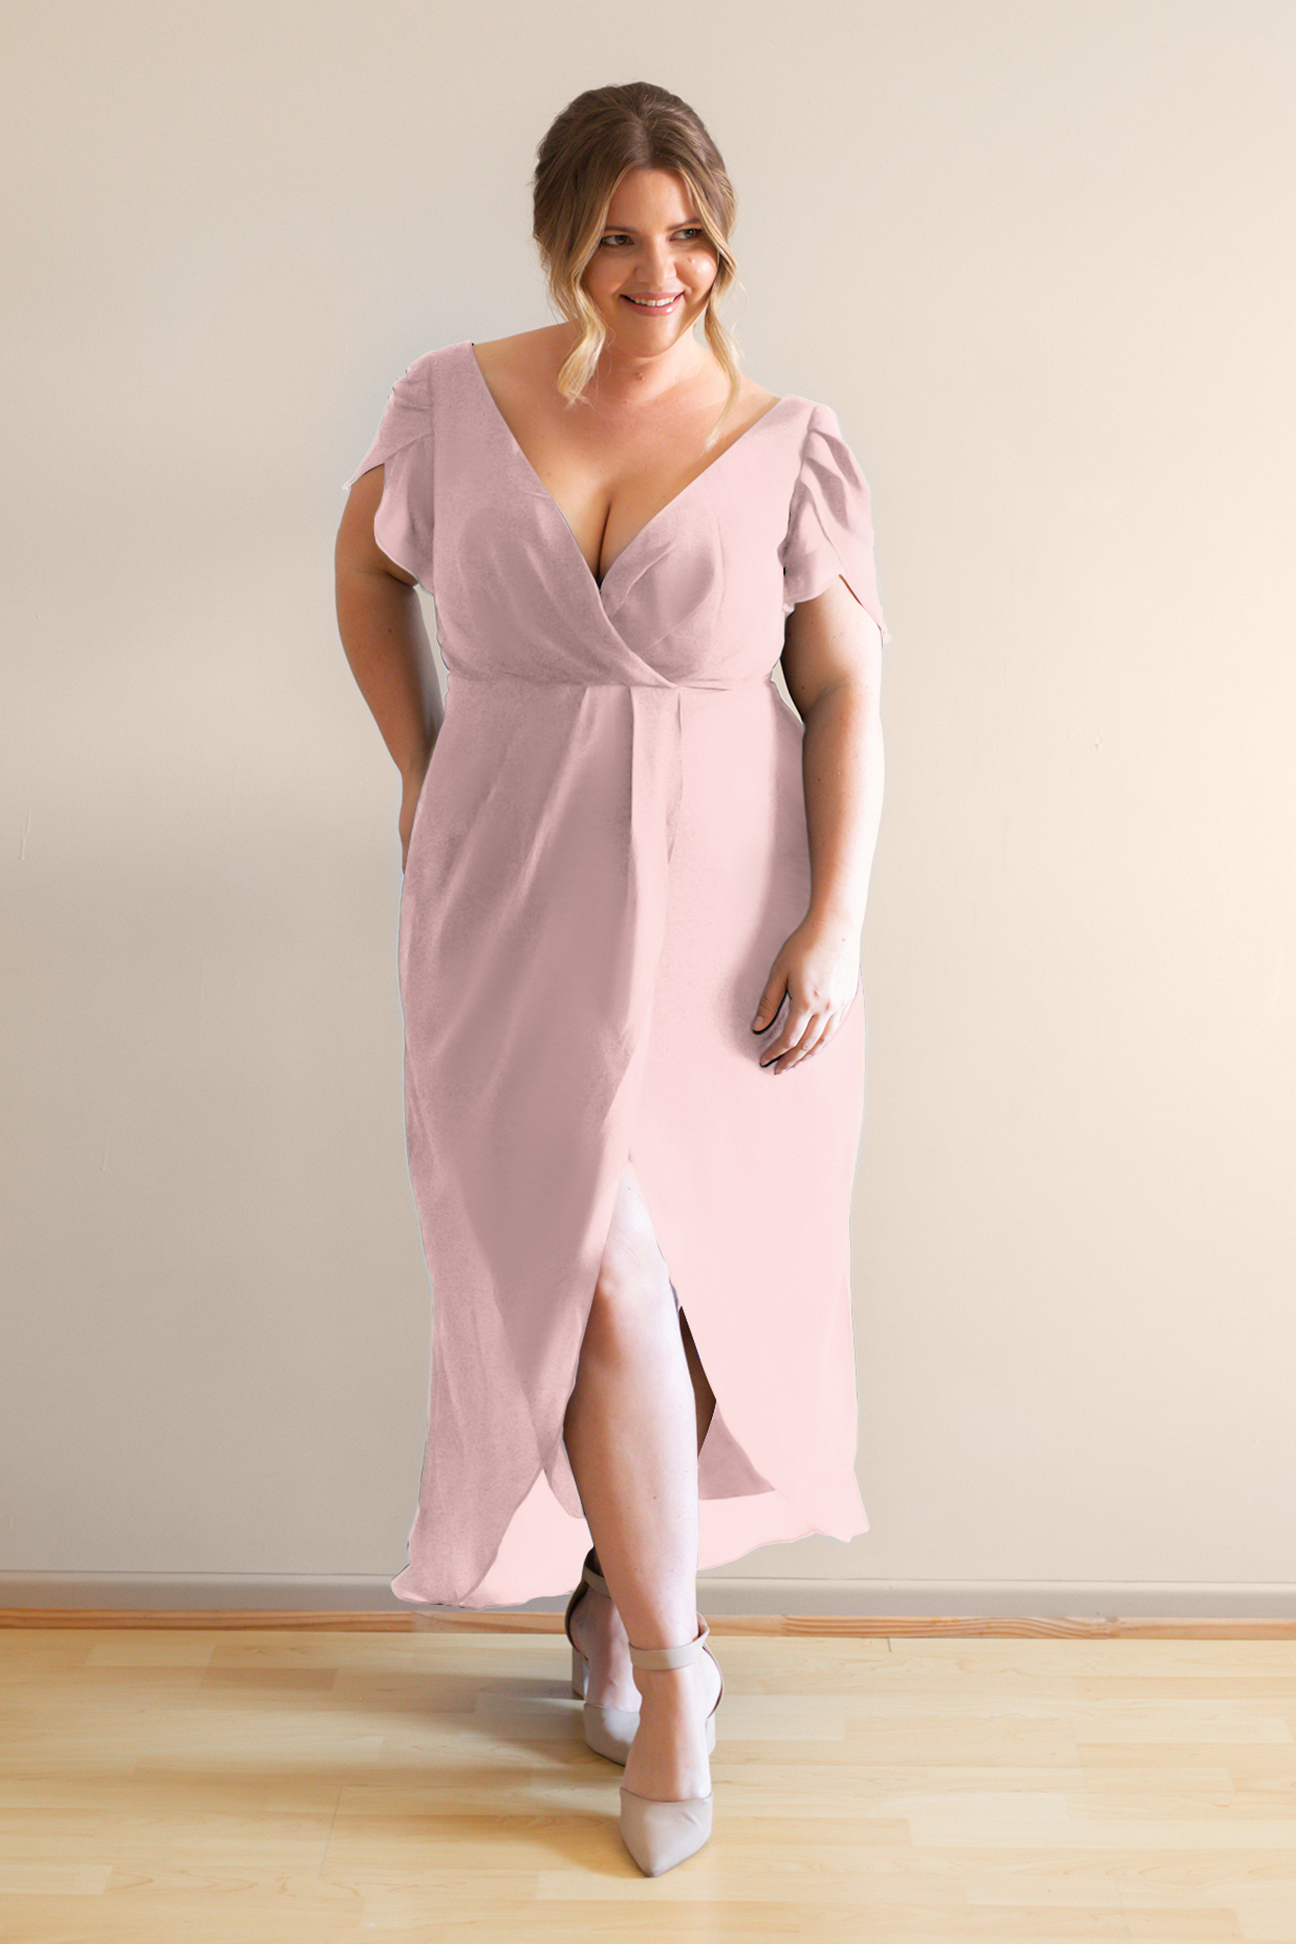 Zara pink bridesmaids cocktail dress with sleeves curvy